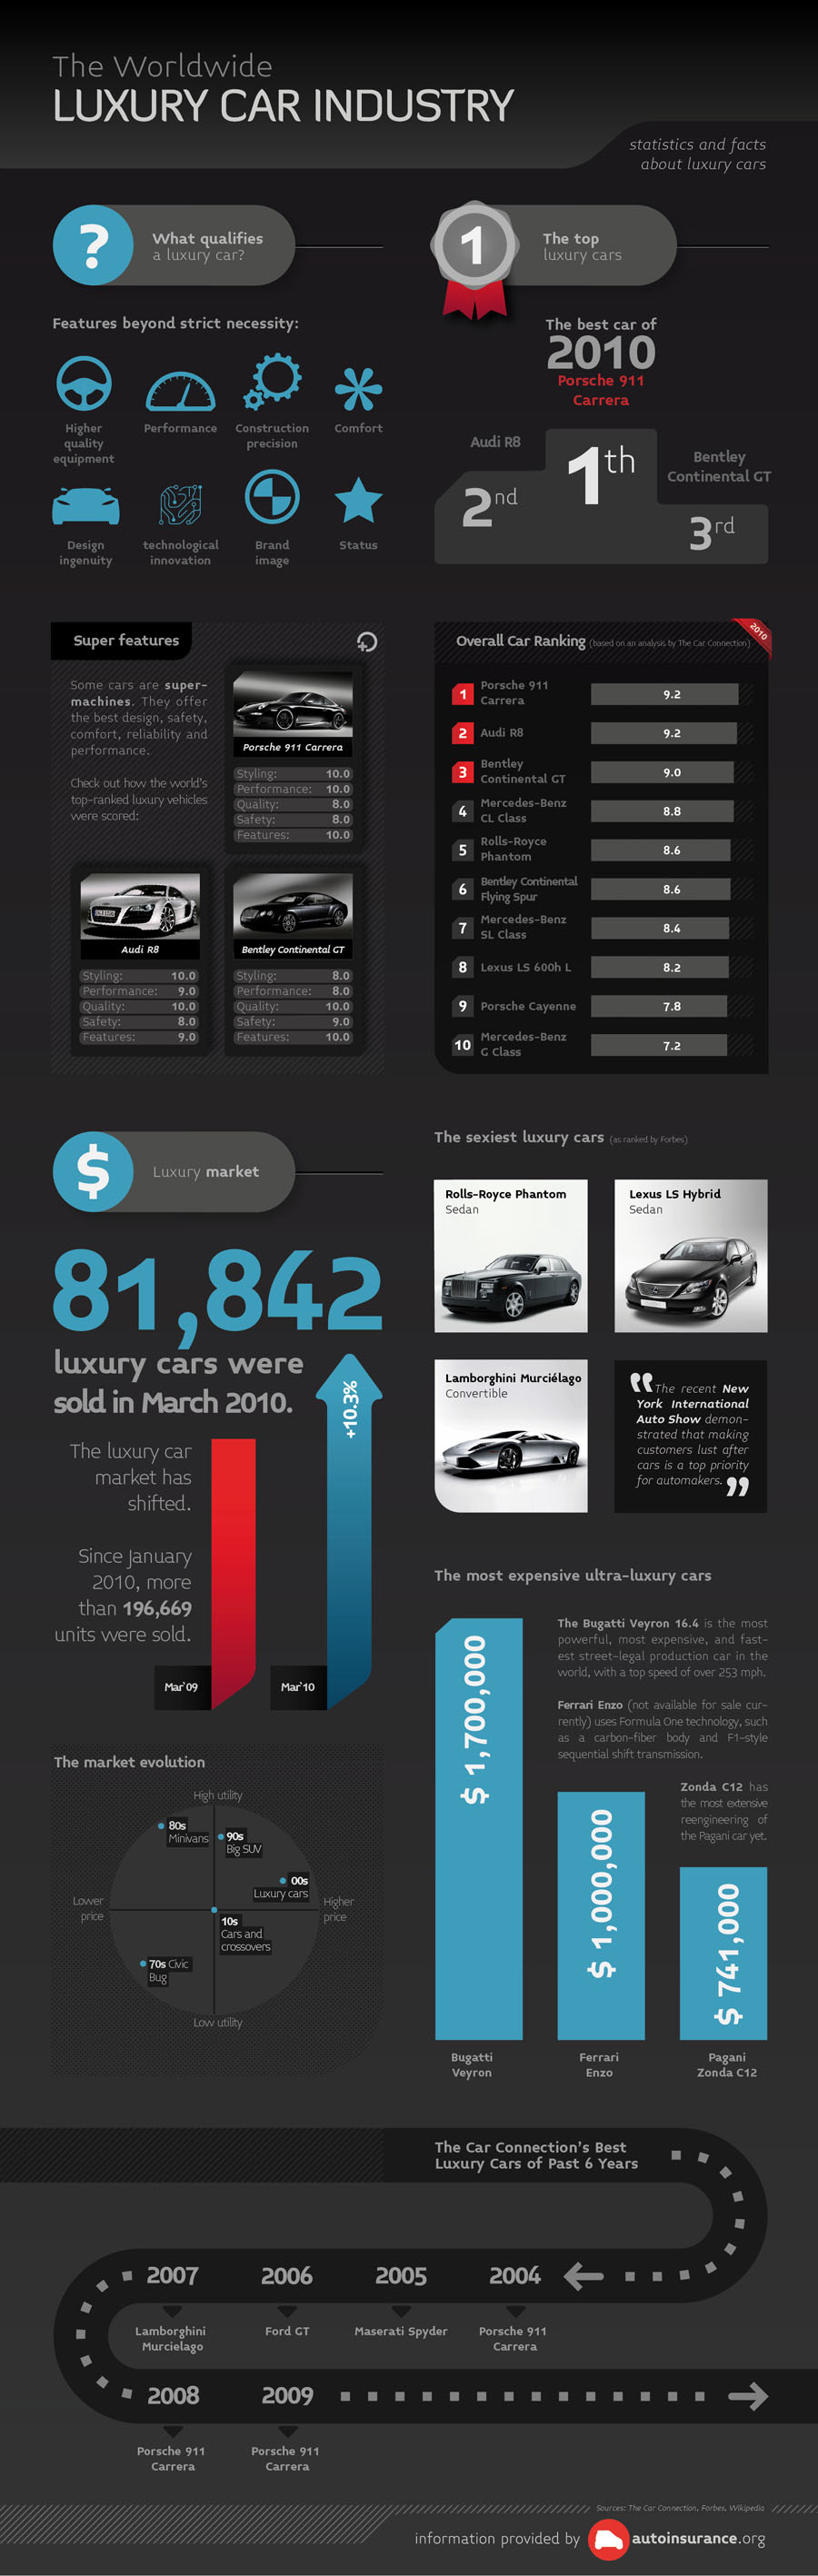 The worldwide luxury car industry